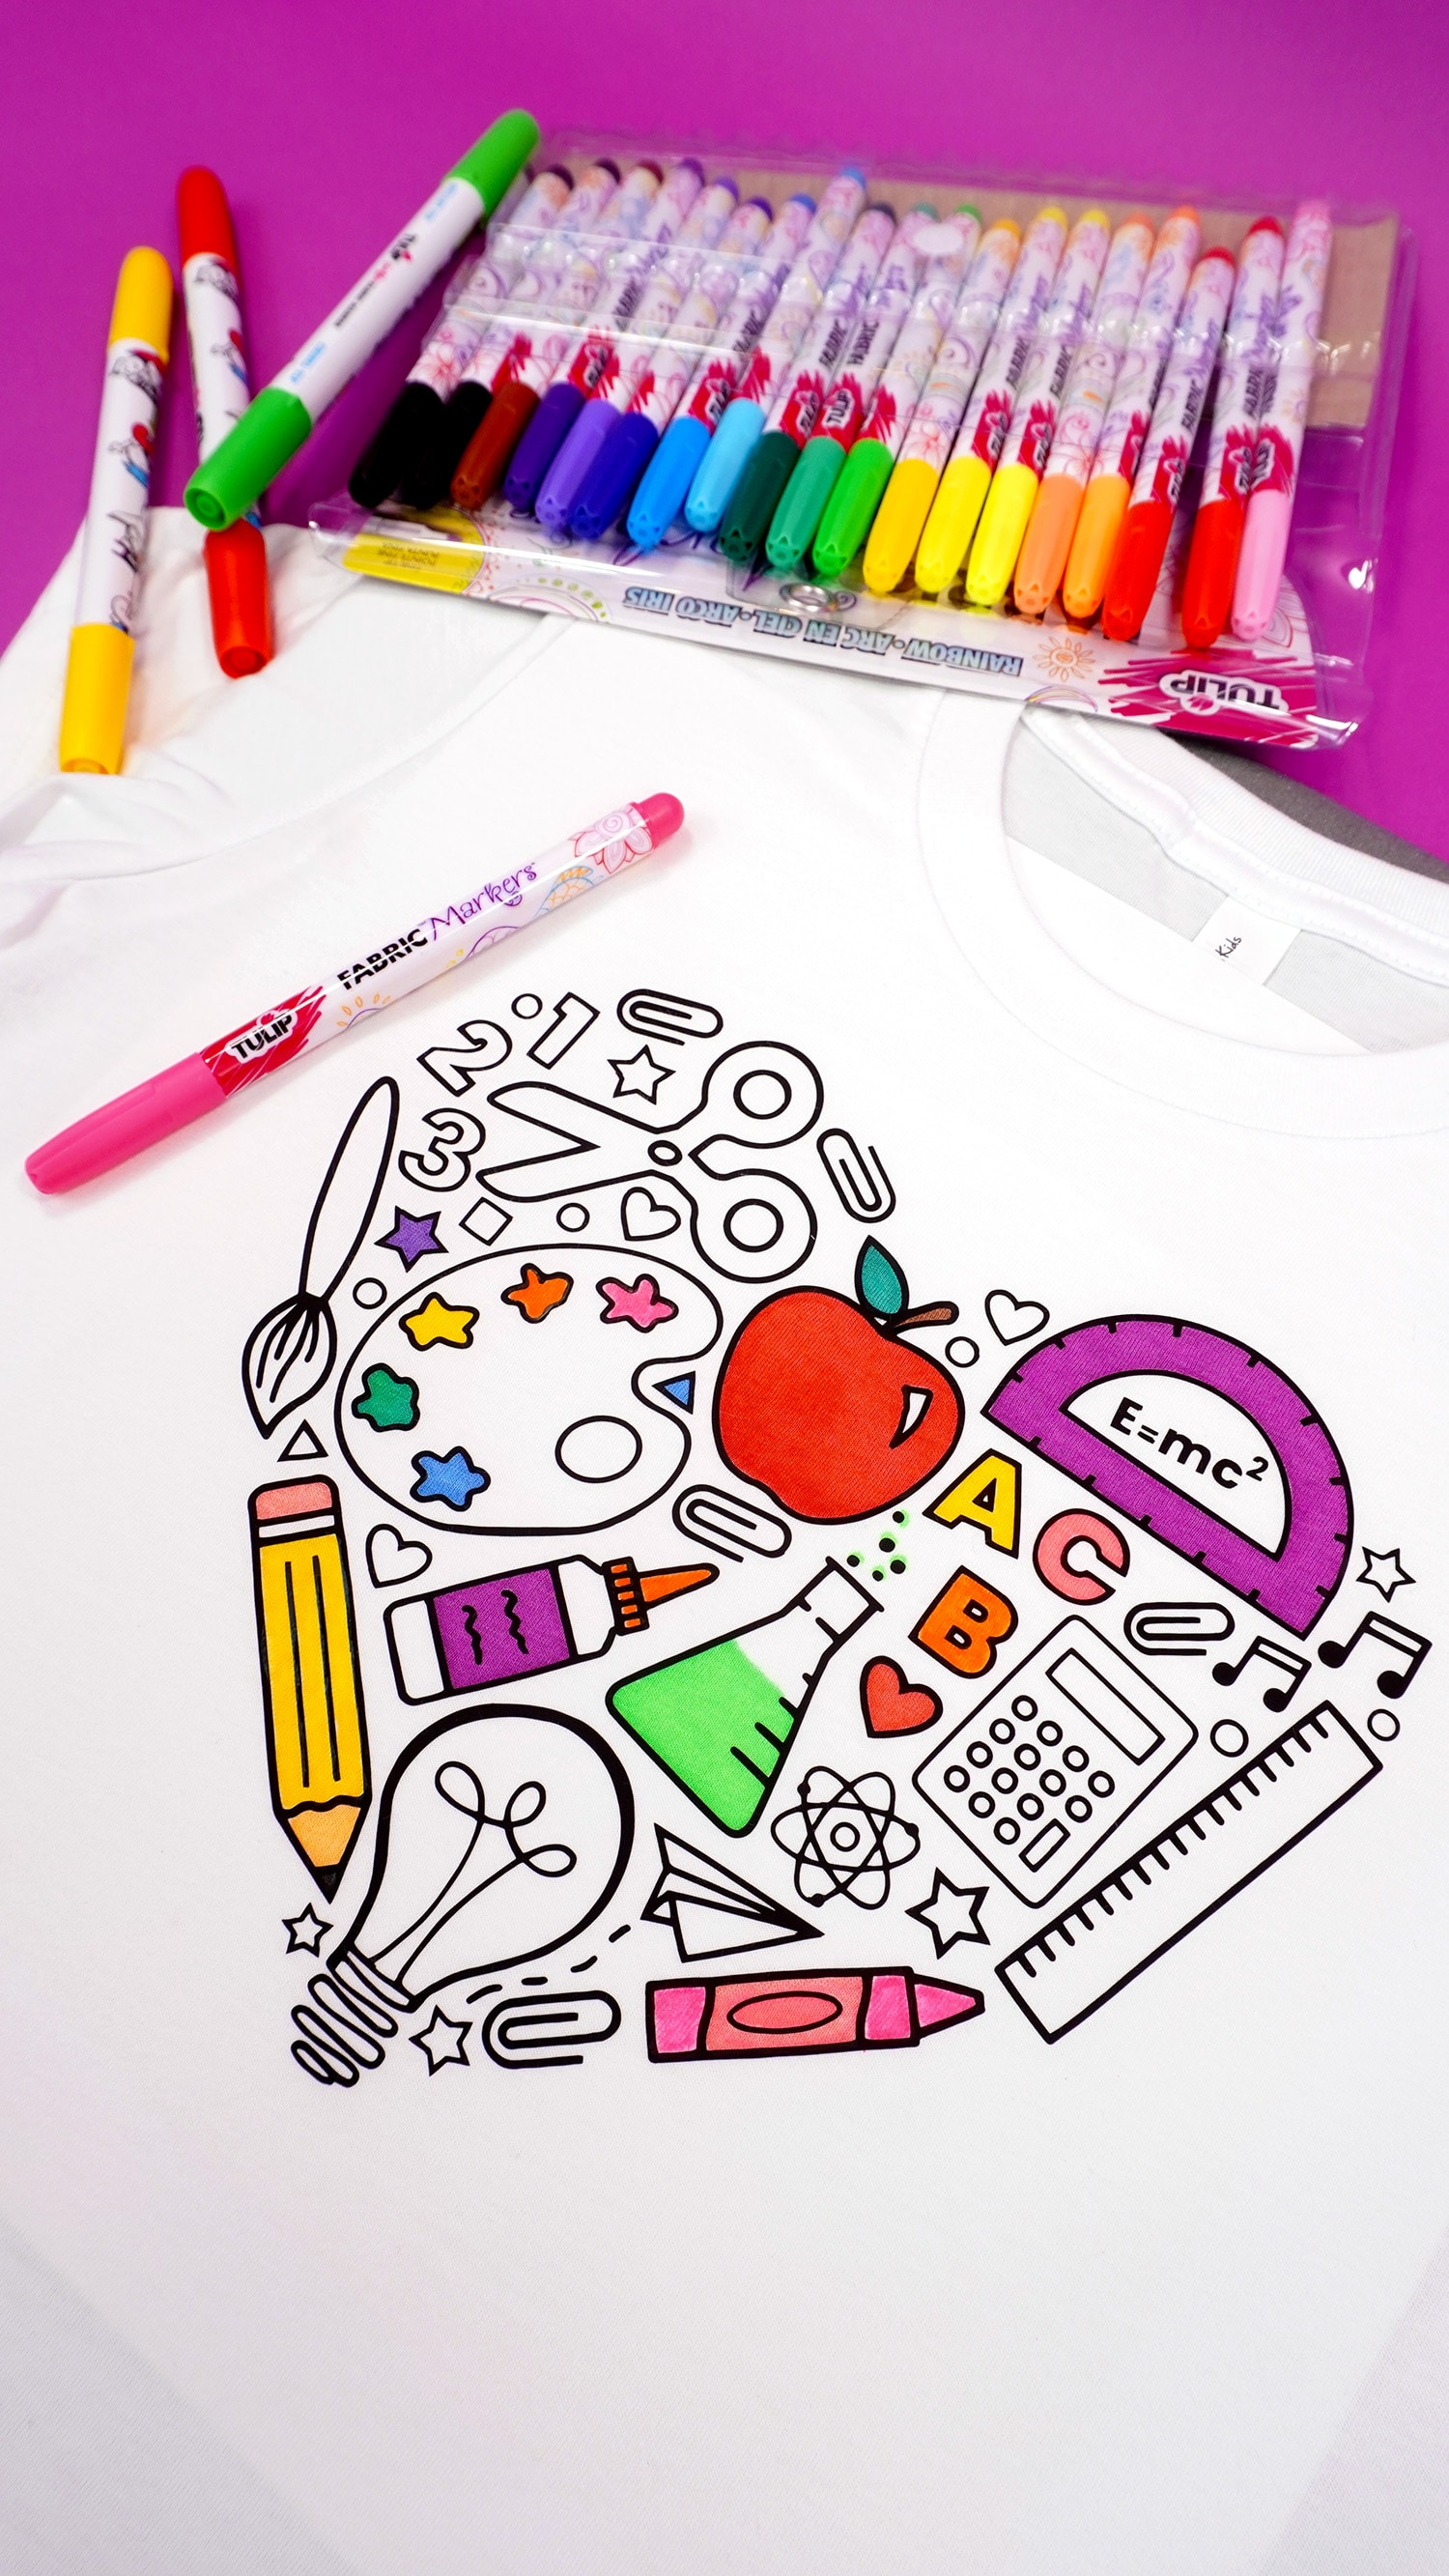 Close up view of partially colored back to school shirt with fabric markers on a purple background